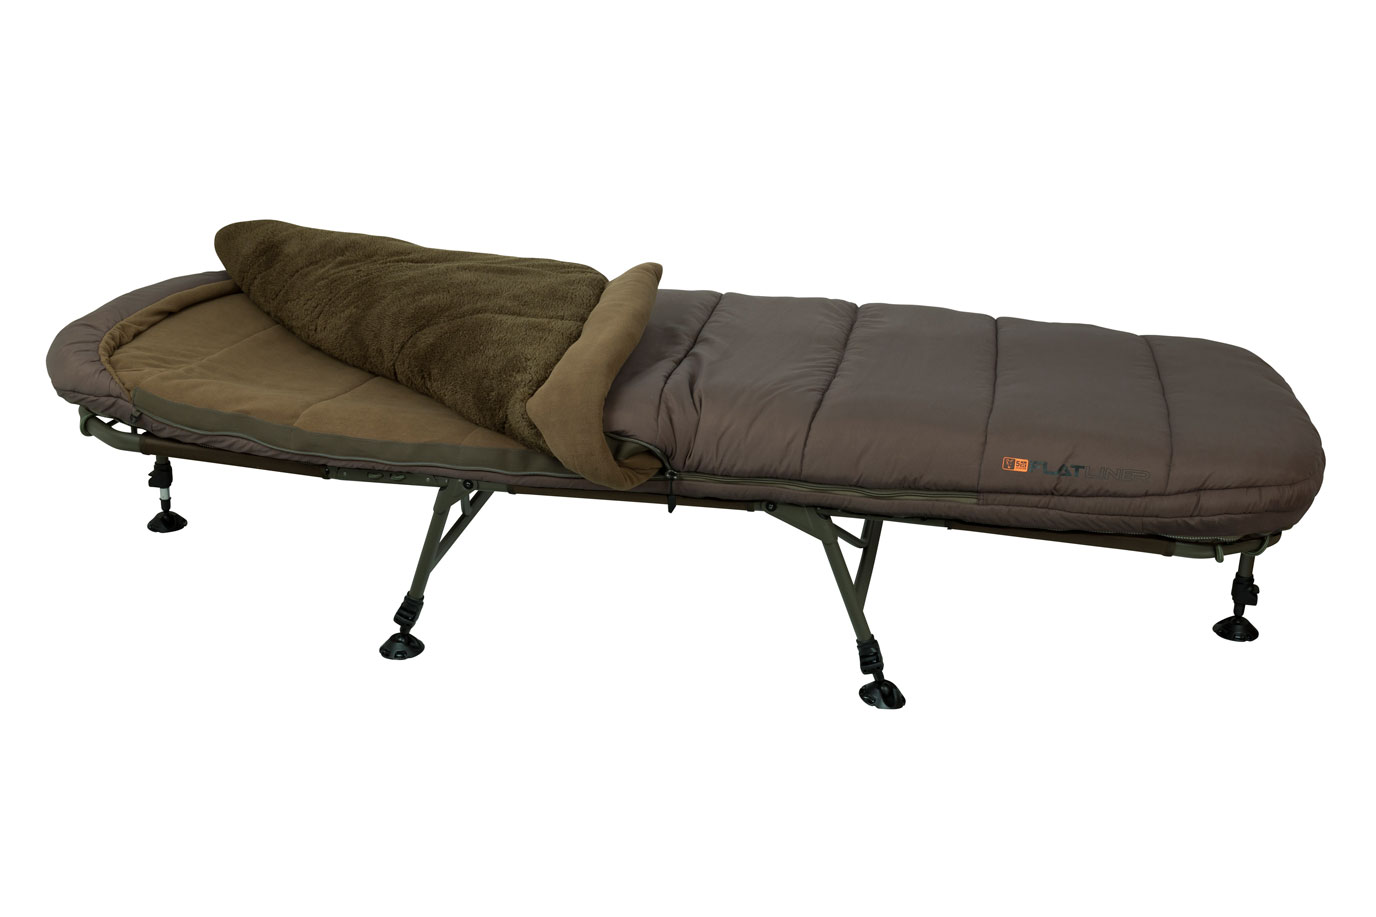 FLATLINER 6 LEG 5 SEASON SLEEP SYSTEM